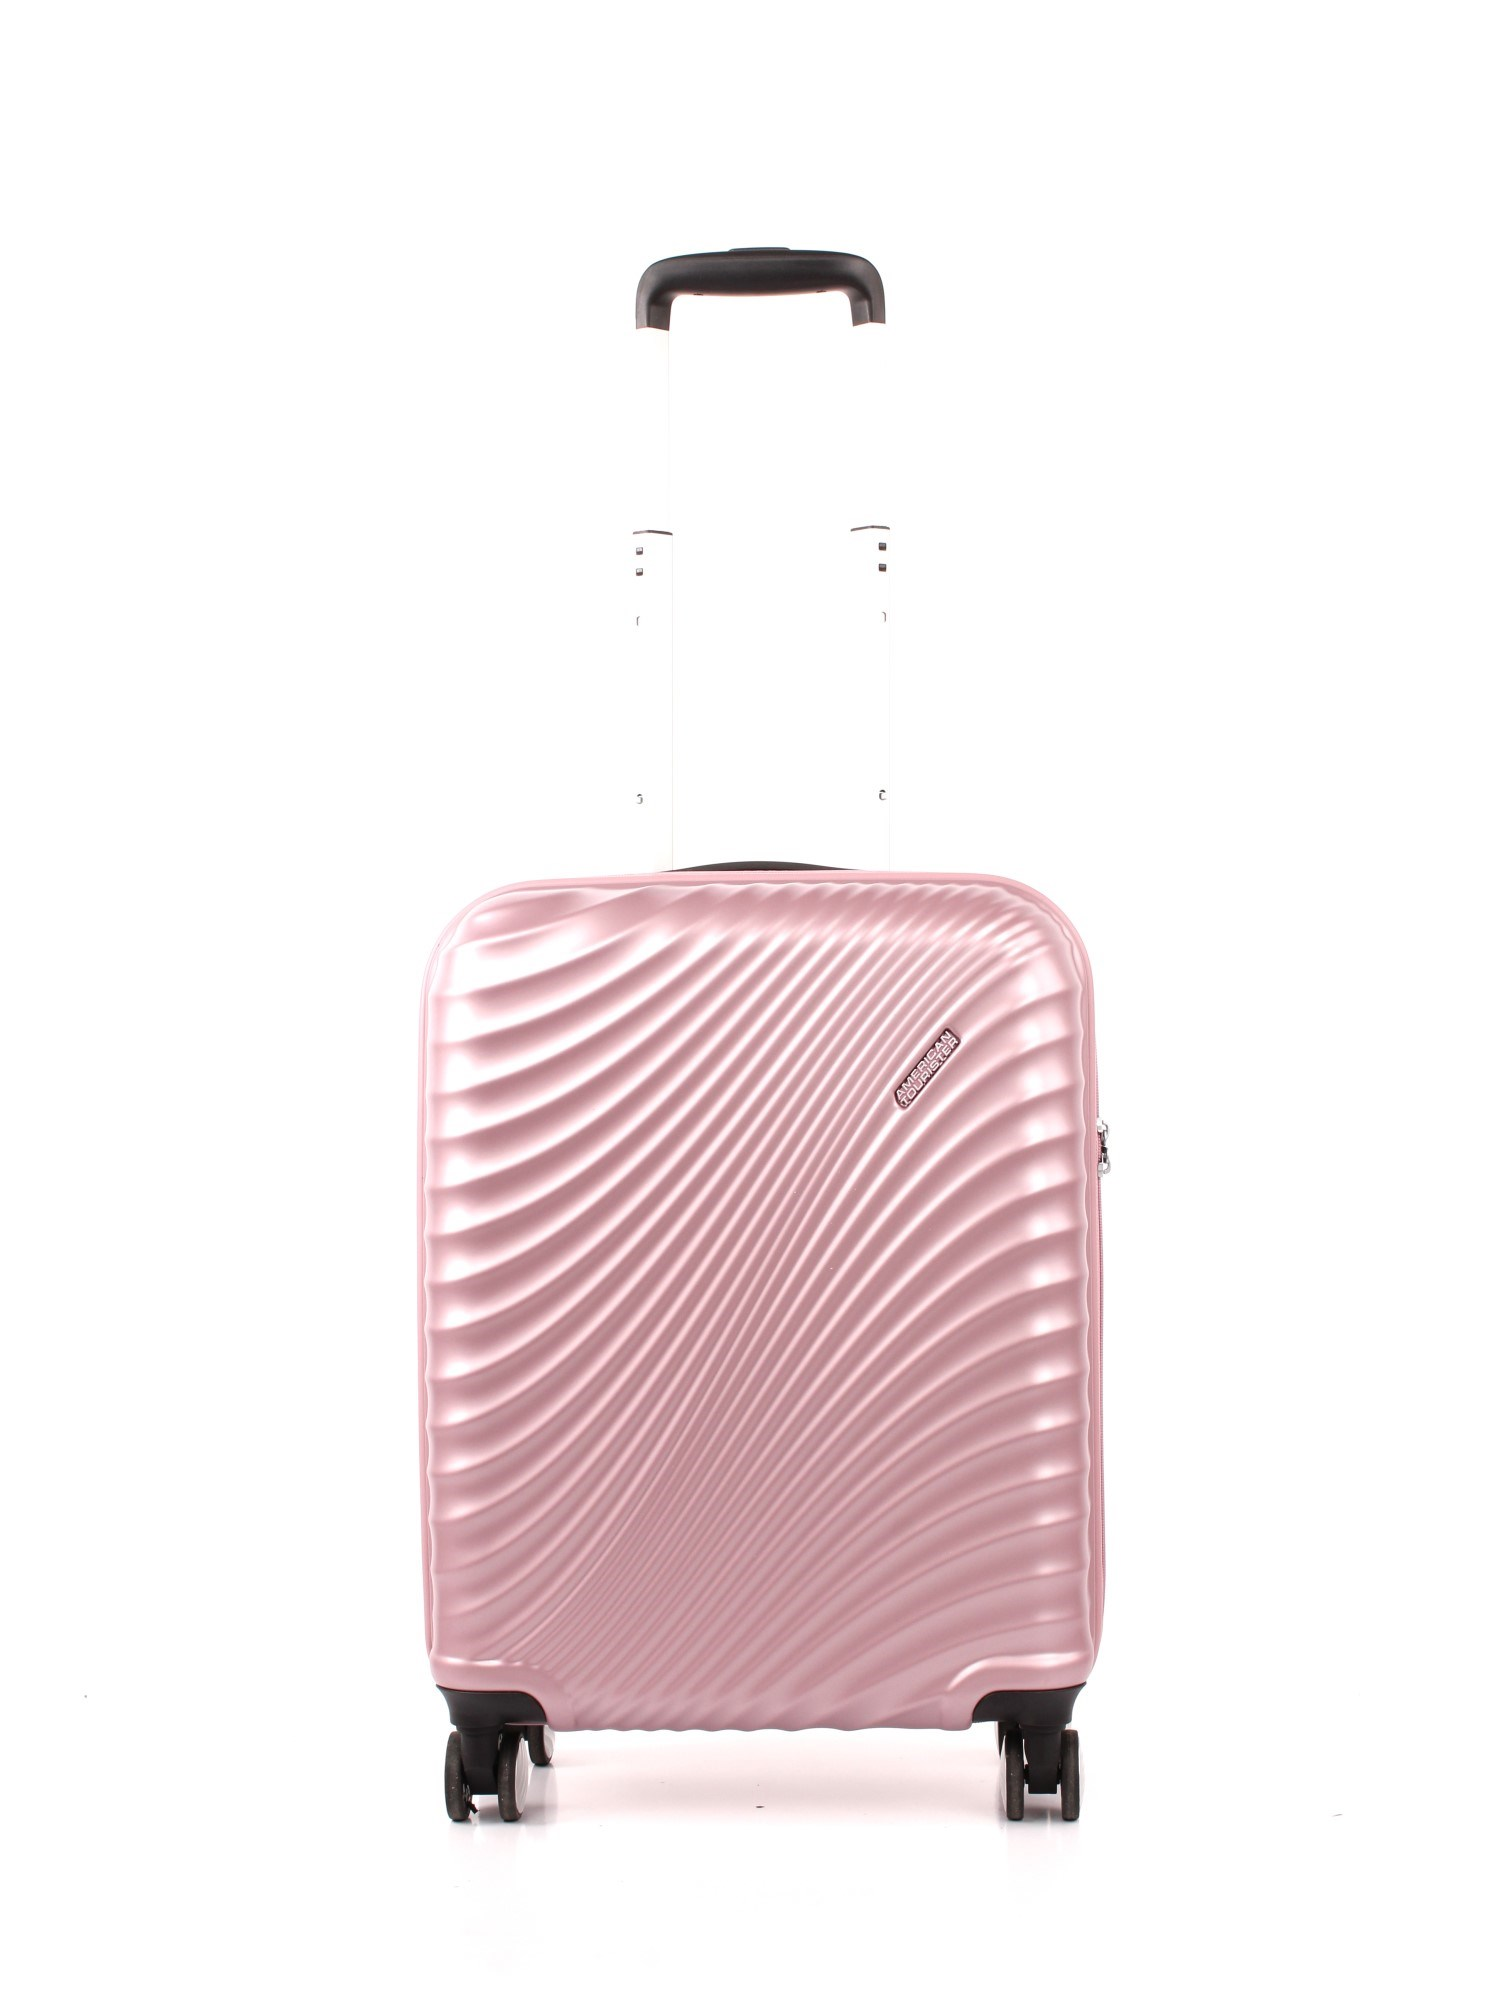 American Tourister Luggage suitcases Hand luggage ROSE 71G080001